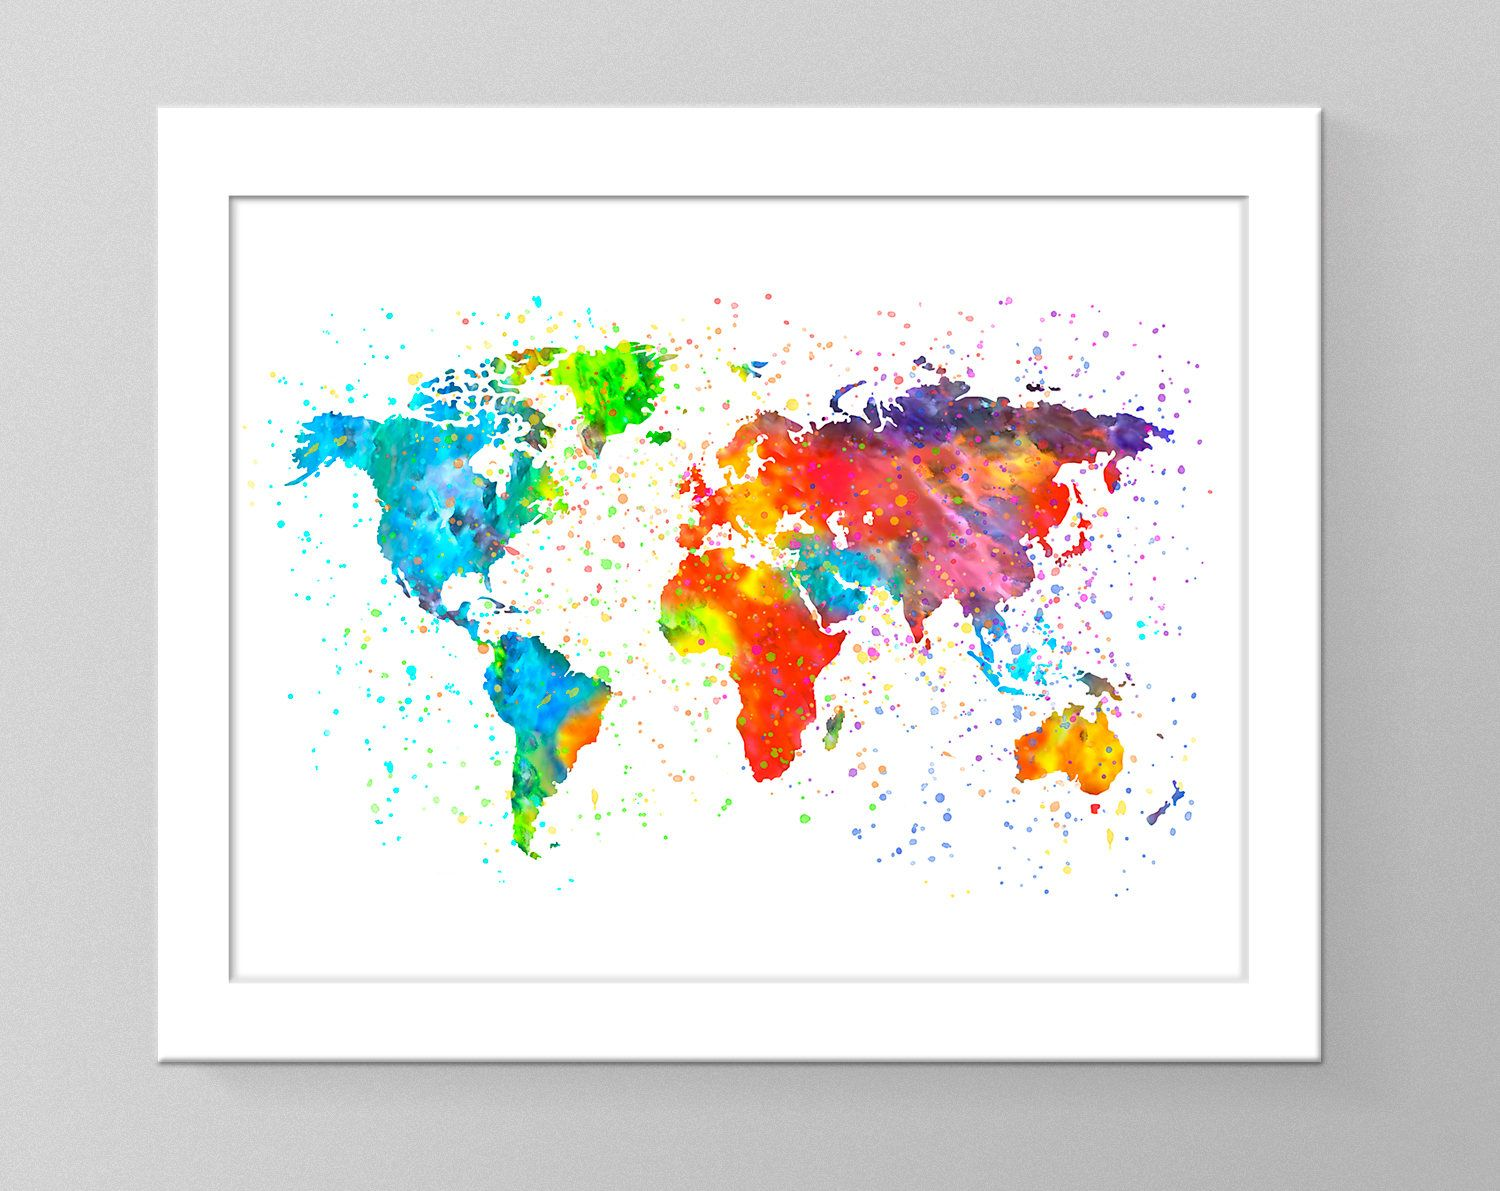 World map watercolor printable art living room decor nursery world map watercolor printable art living room decor nursery decor kids room sciox Image collections